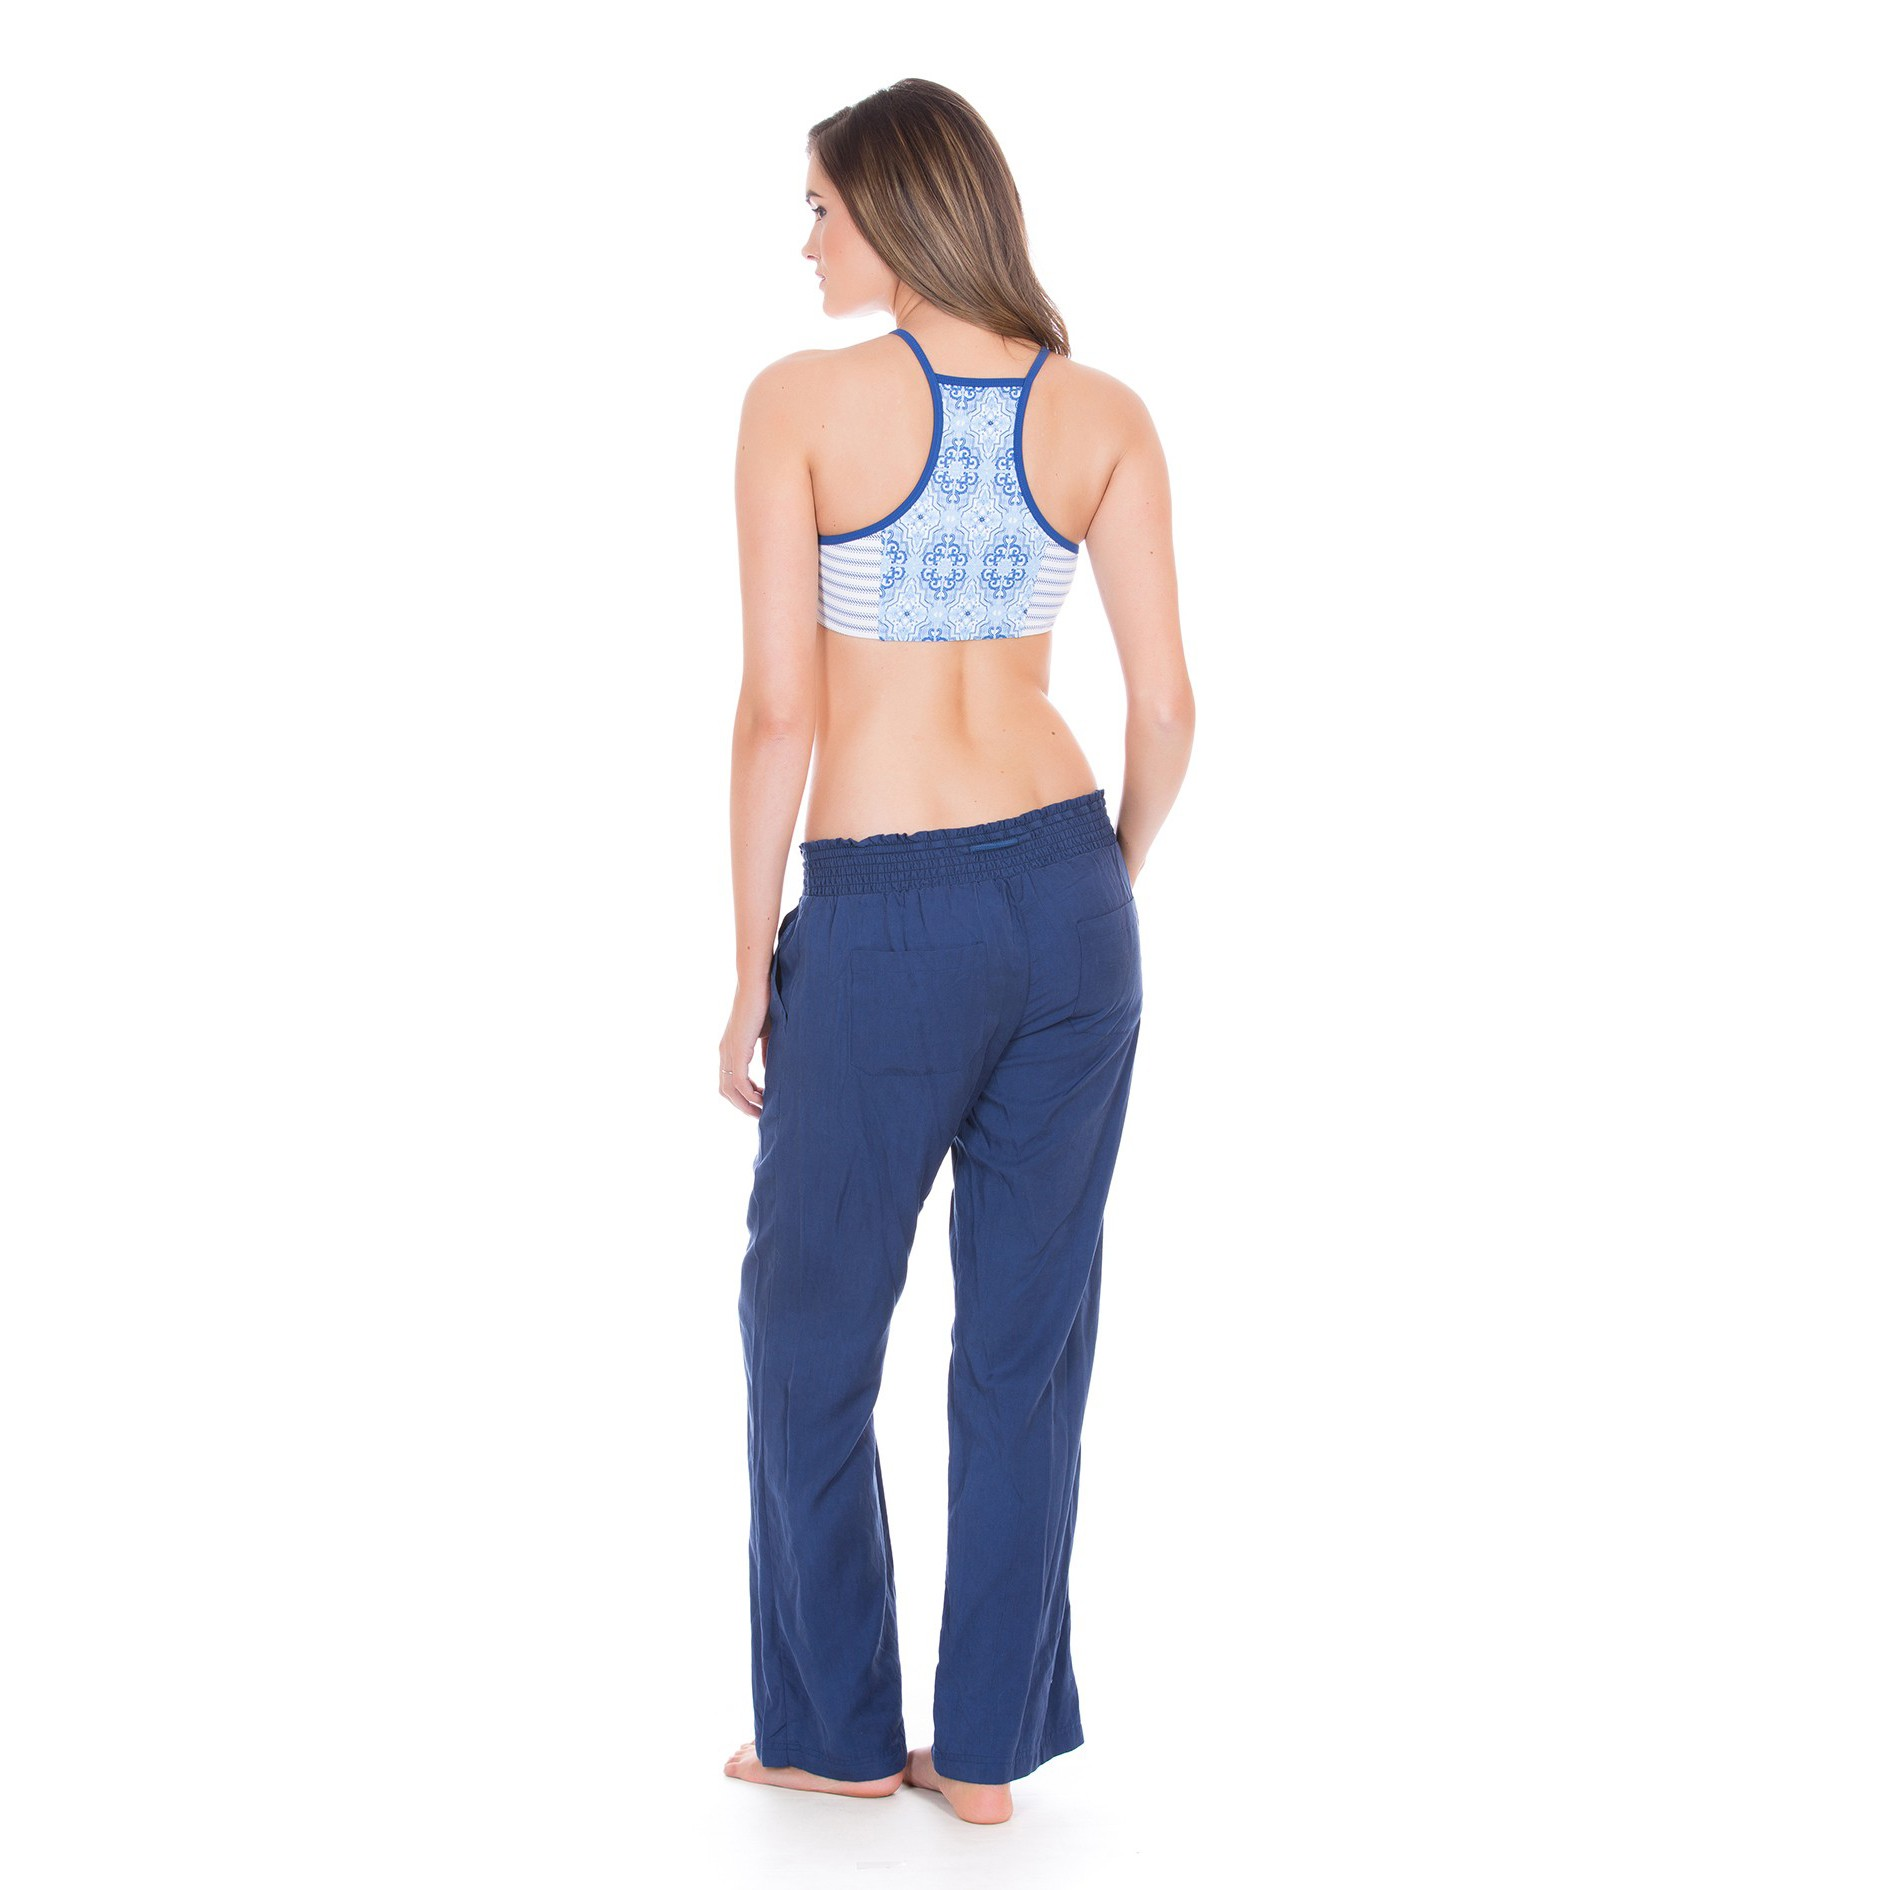 Cabana Life Tencel +50 UV Woven Lounge Pants (Womens)